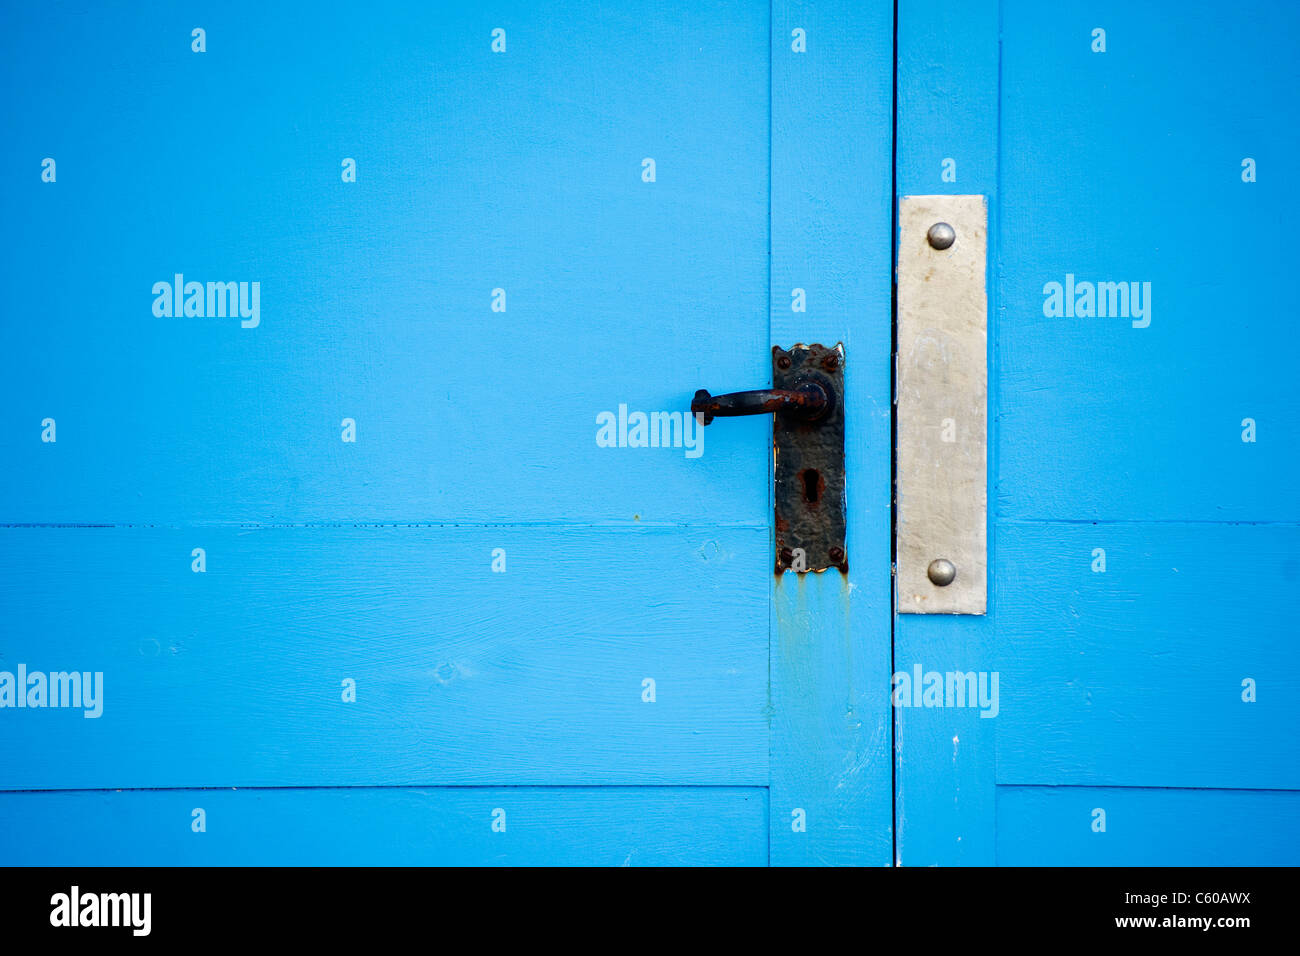 Bright blue beach hut door close up - Stock Image & Shut Door Stock Photos u0026 Shut Door Stock Images - Alamy